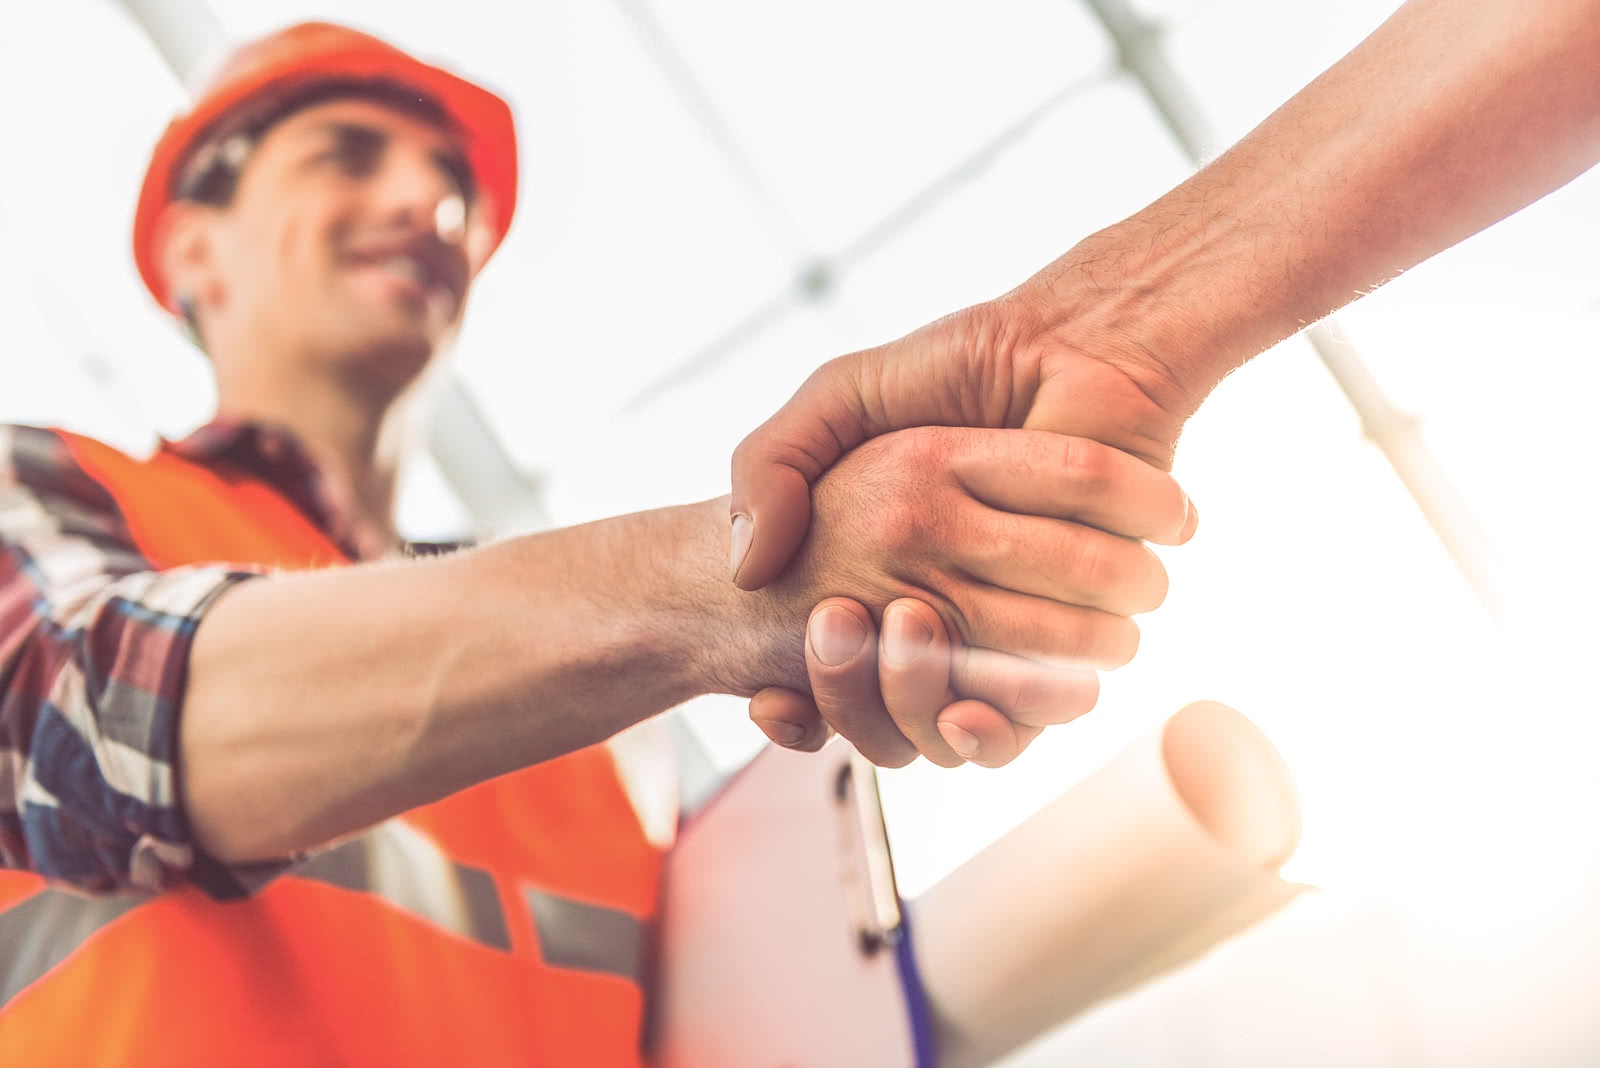 Construction worker gets a loan without hurting his business credit score